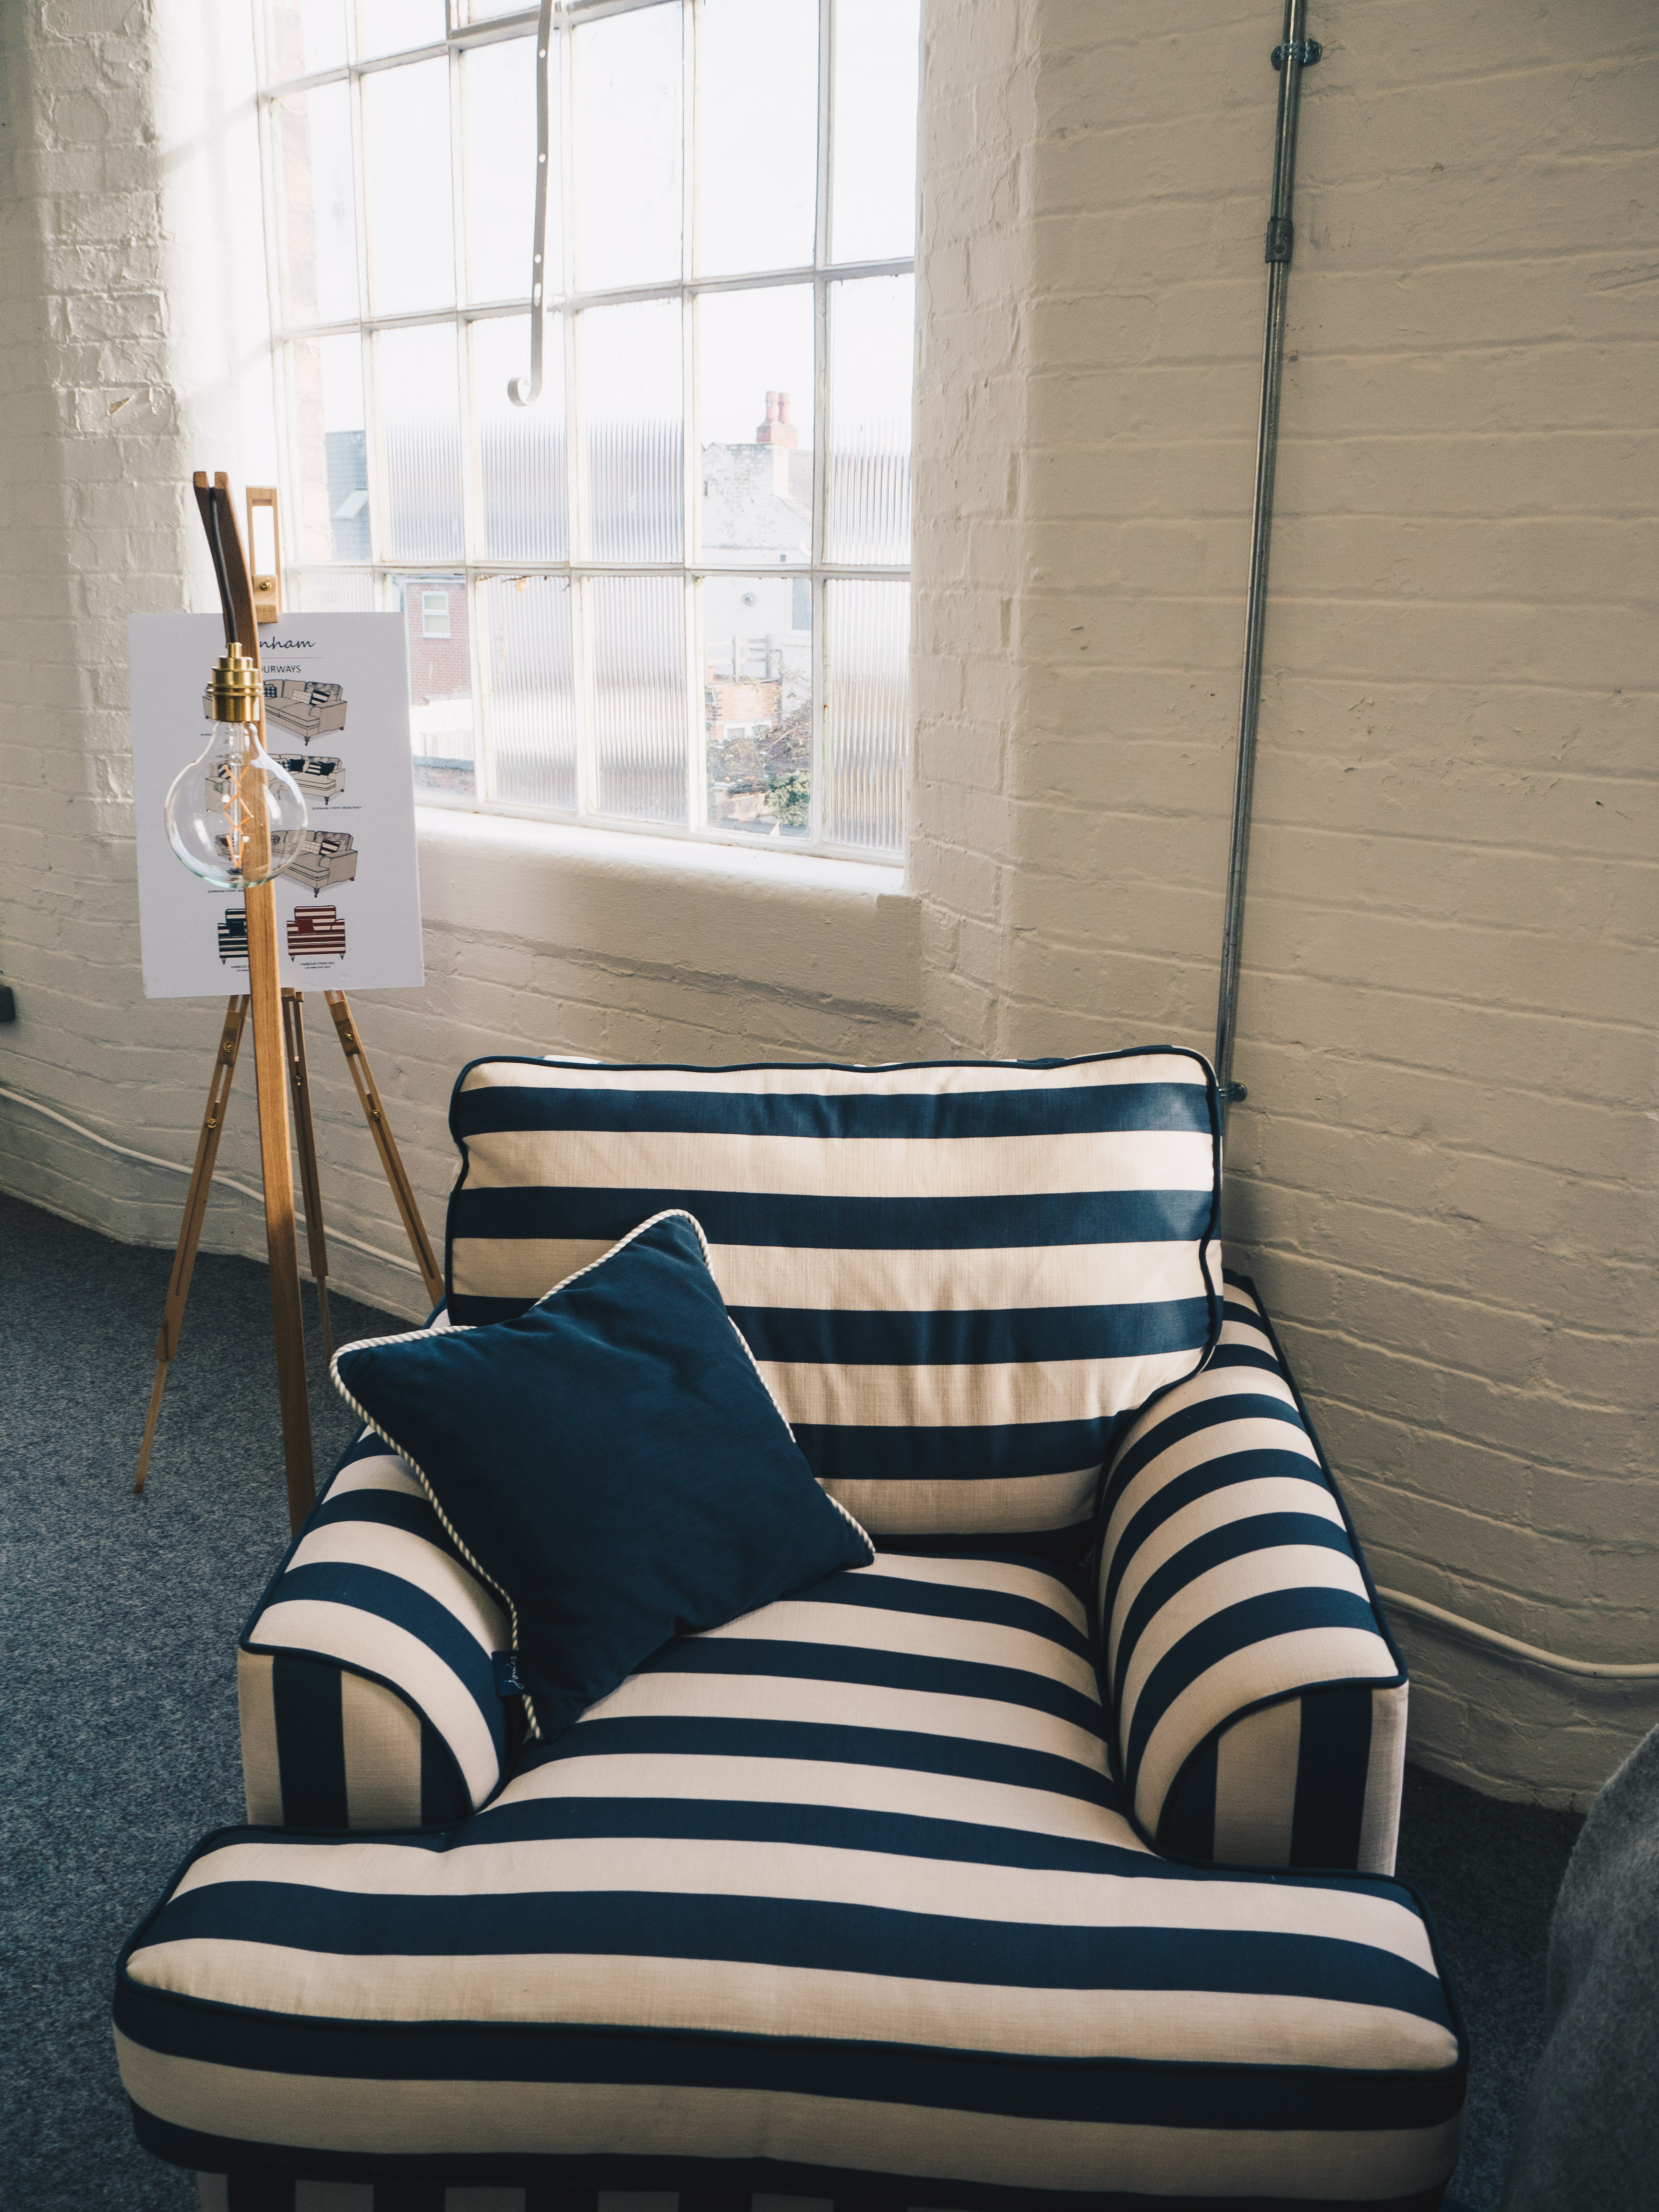 Fine At Dfs For The Joules Dfs Collaboration Sneak Peek Rhyme Andrewgaddart Wooden Chair Designs For Living Room Andrewgaddartcom